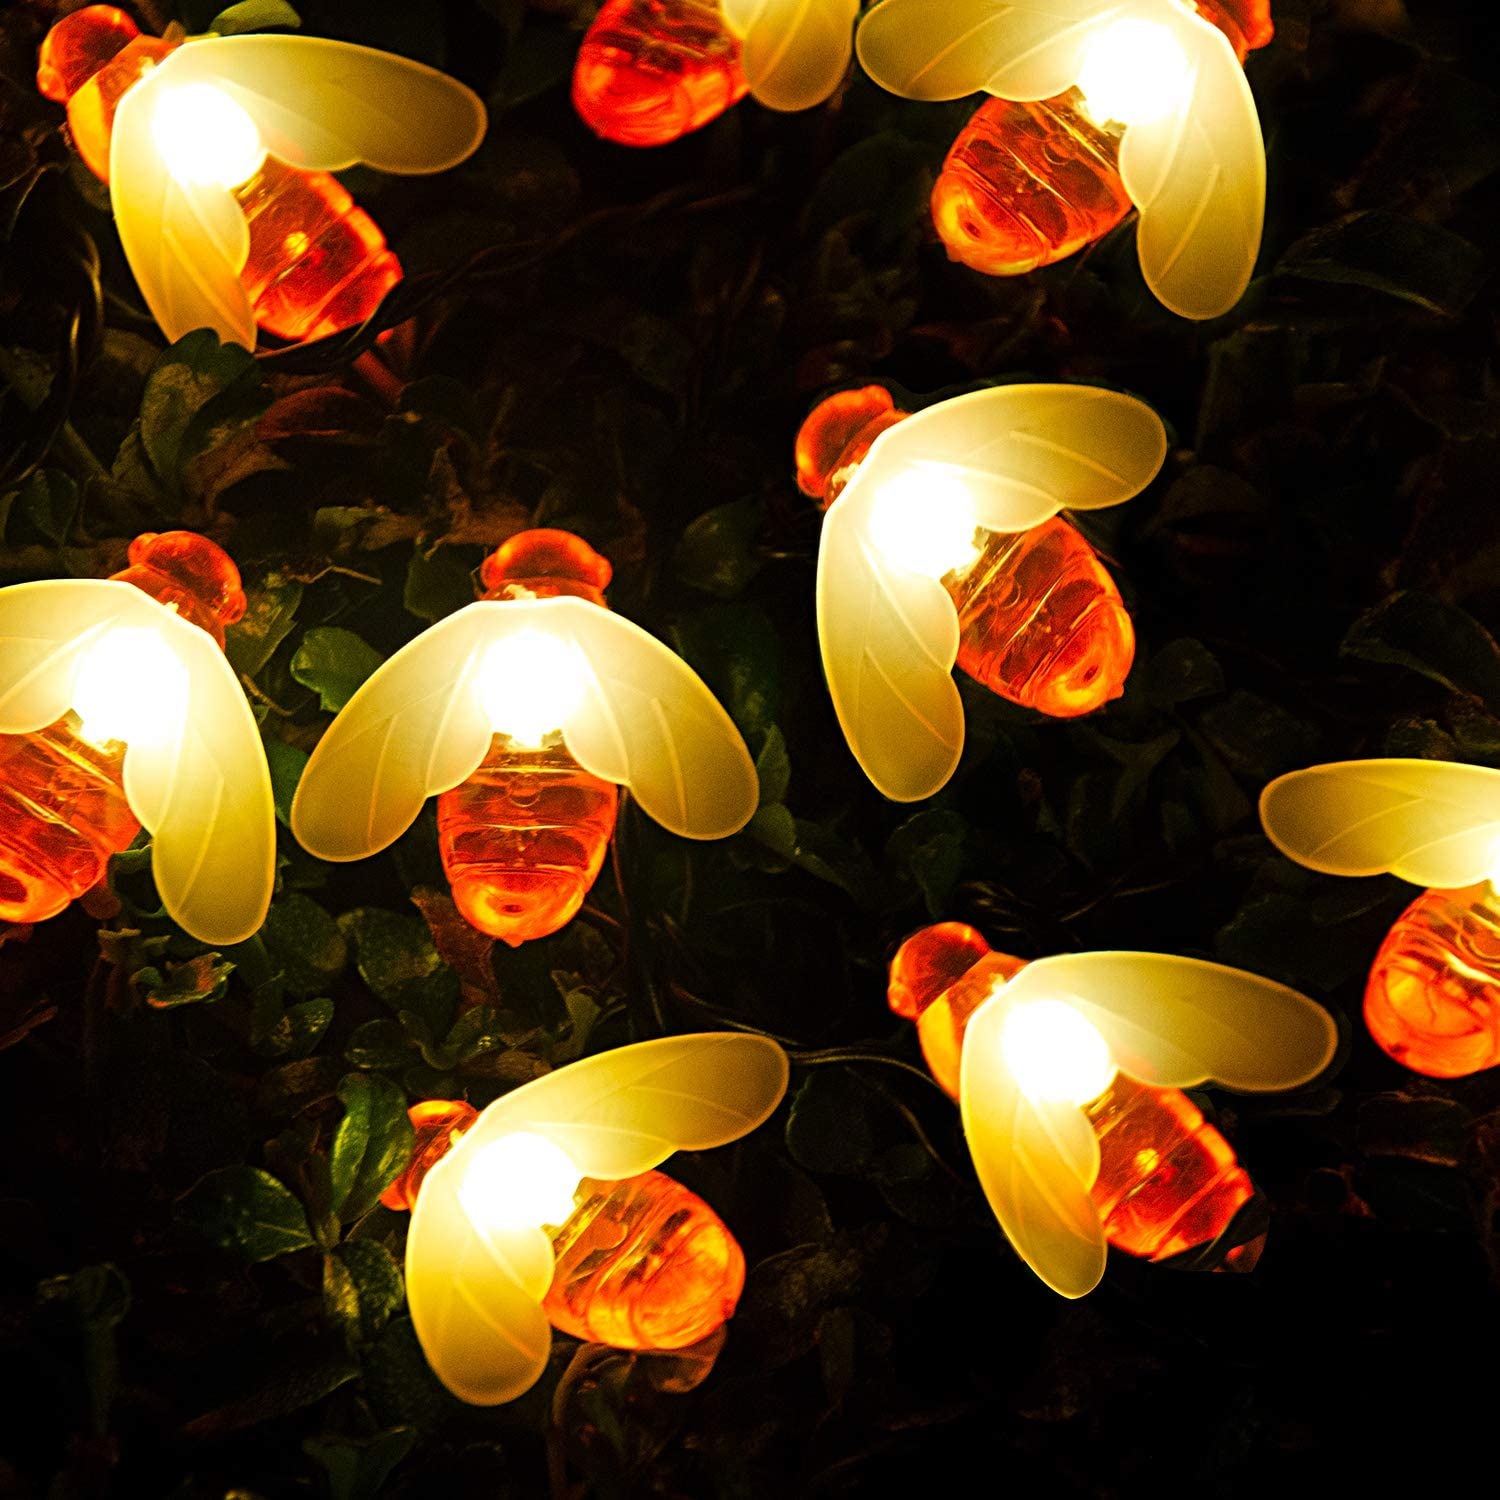 Solar String Lights, 30 led Solar Bee Lights, Fairy Lights, 23 ft Solar Garden Lights,2 Modes Solar Flower Lights for Outdoor, Home, Lawn, Wedding, Patio, Party and Holiday Decorations, 2-Pack